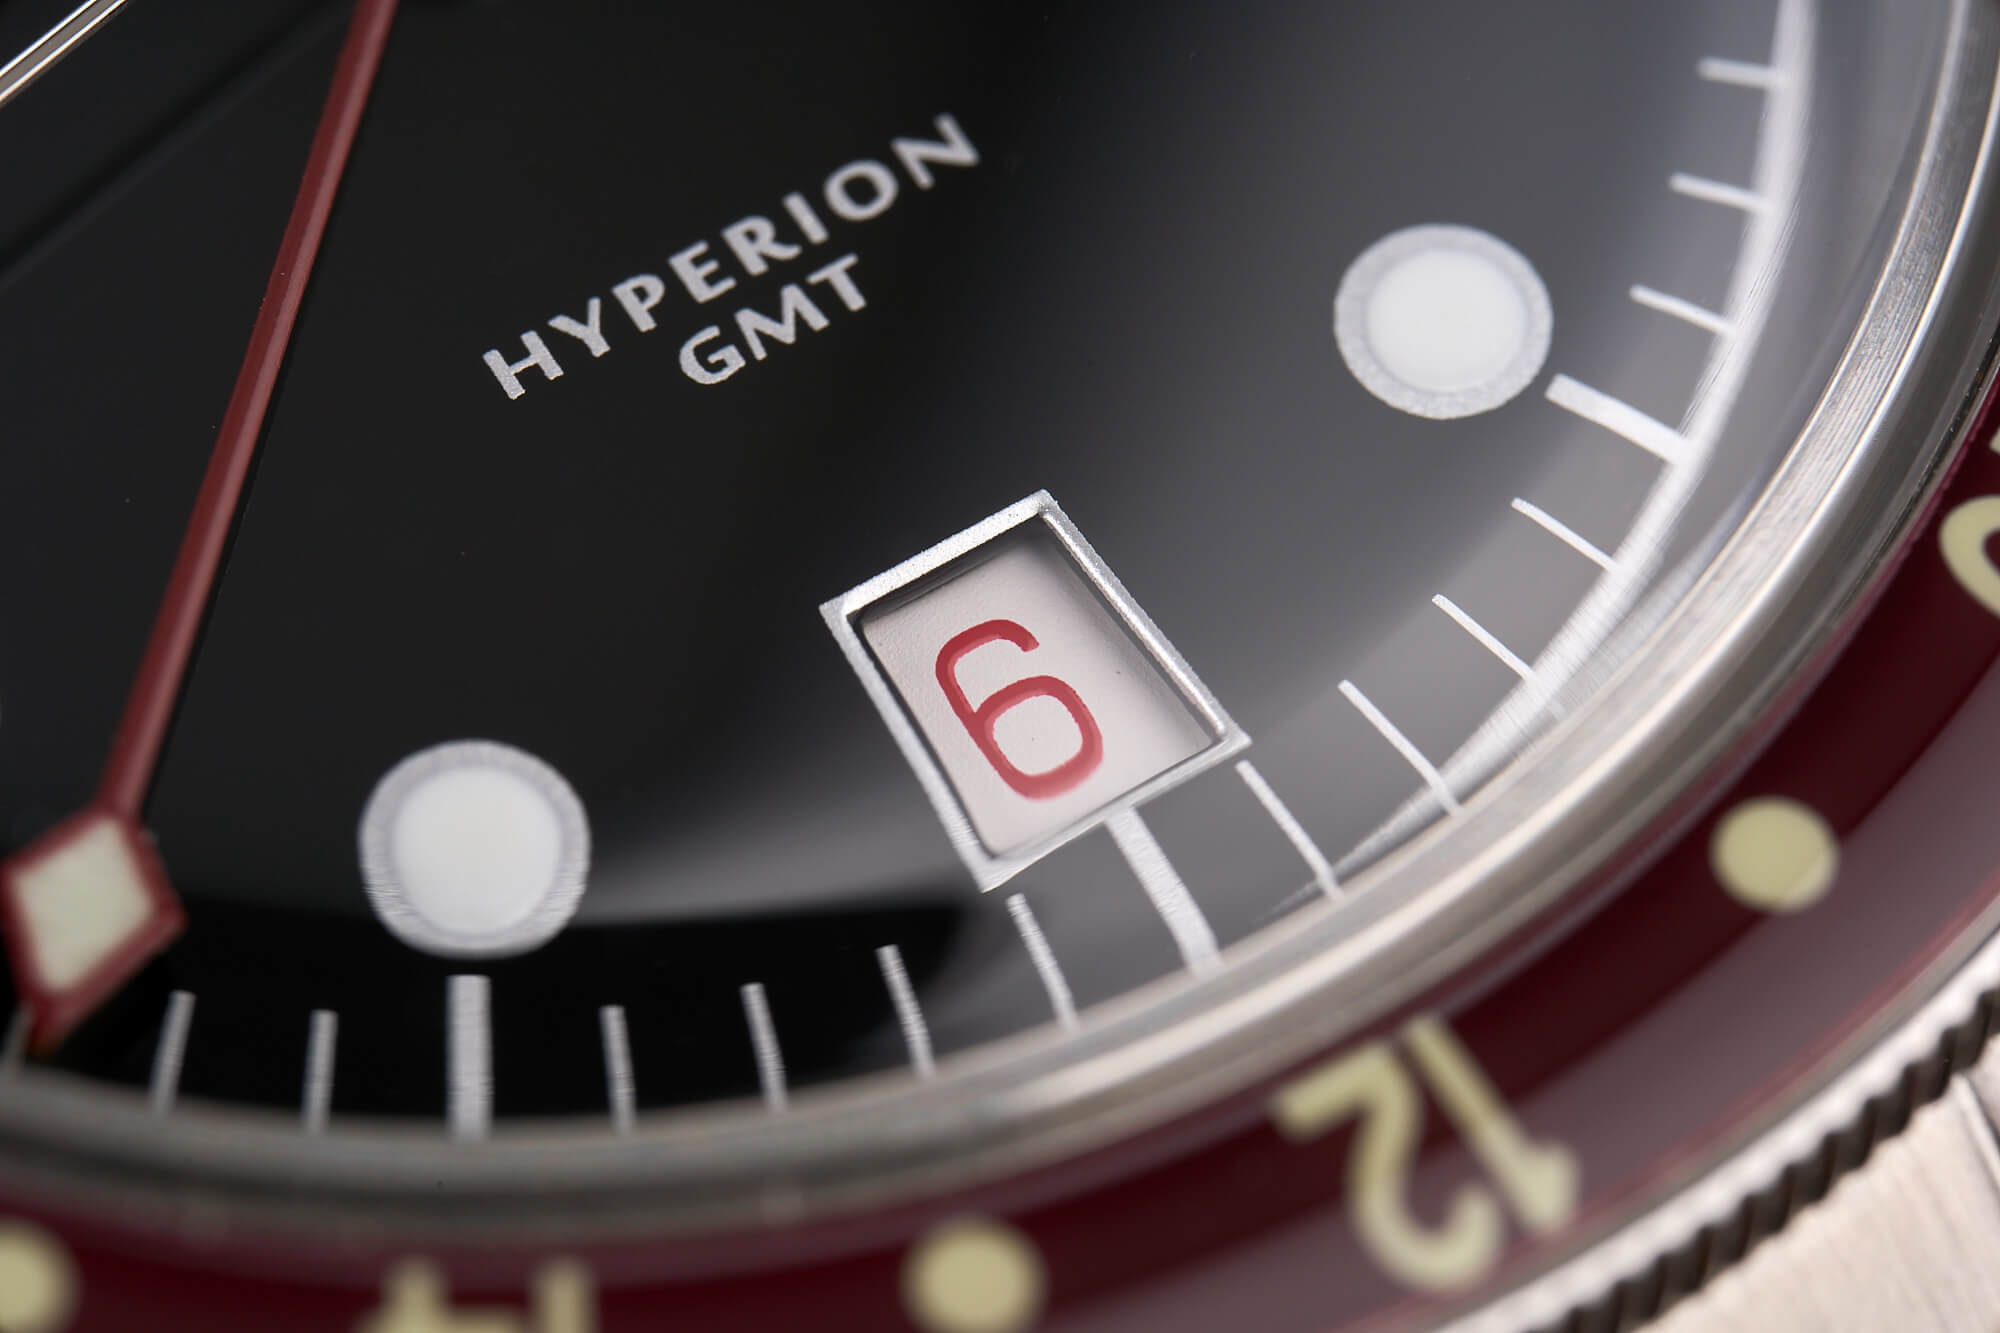 lorier-hyperion-gmt-20